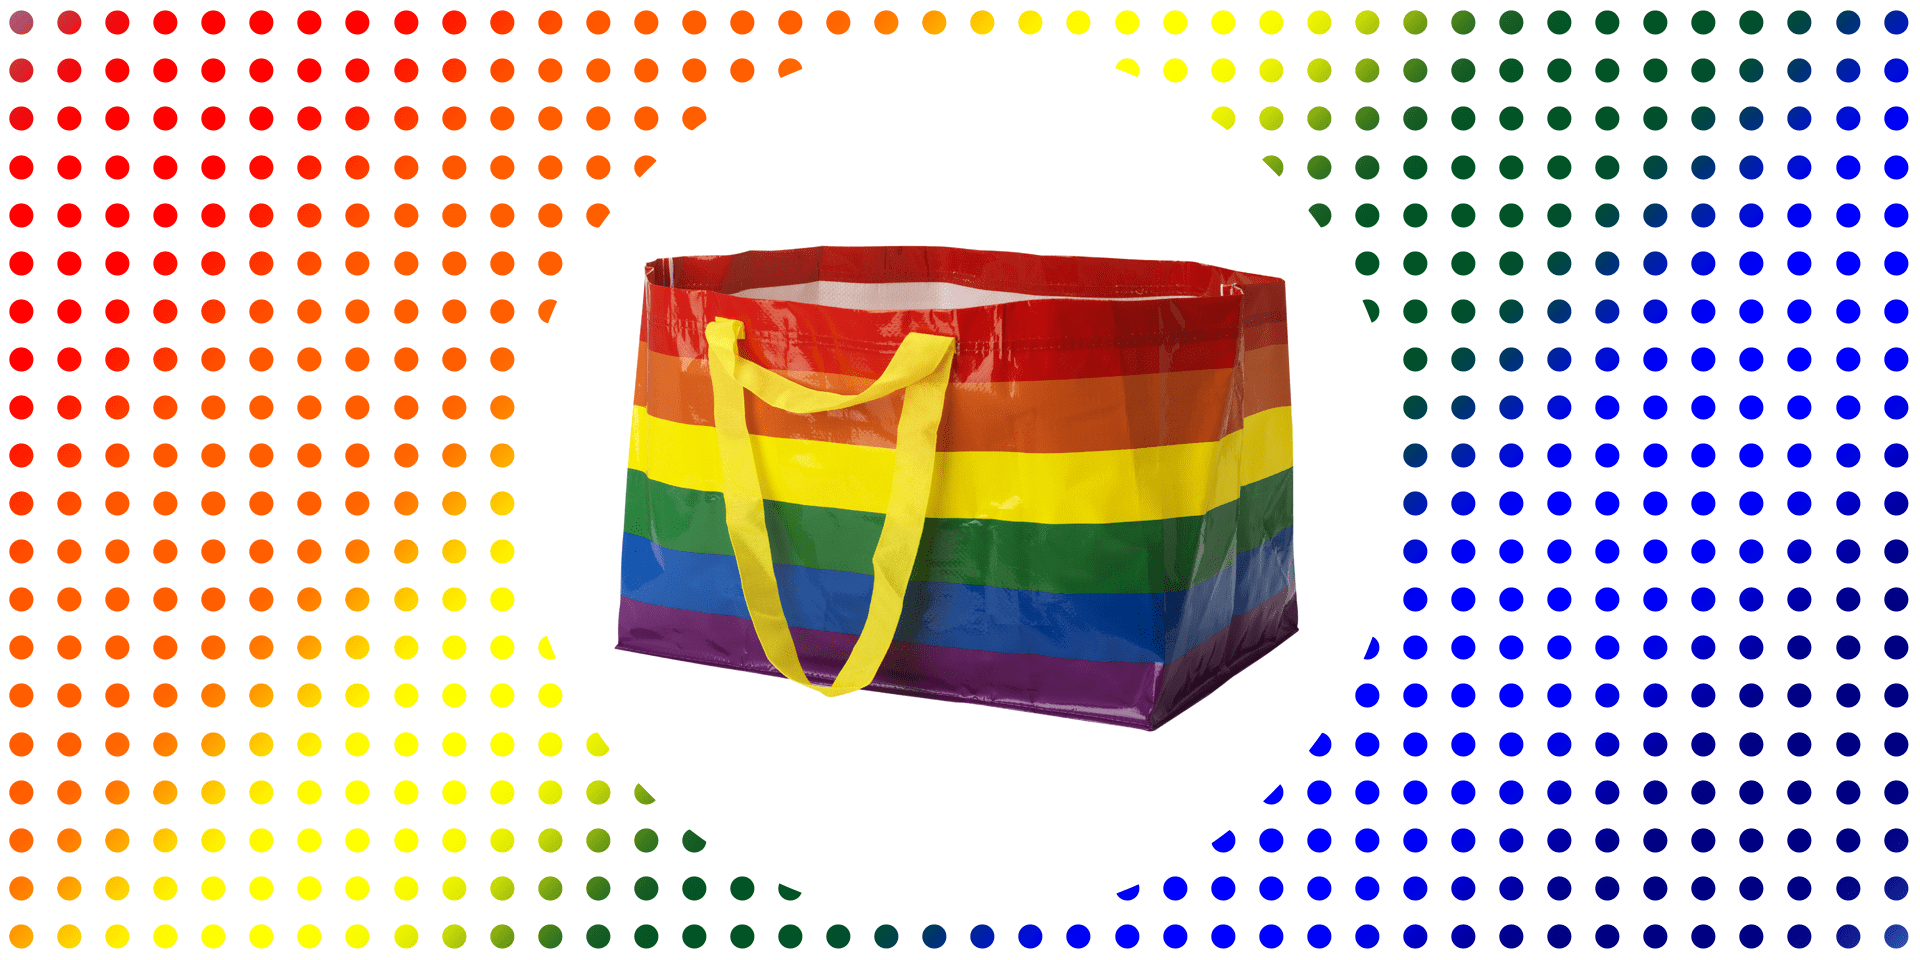 Ikea Kit Dressing Ikea Releases Rainbow Kvanting Shopping Bag For Pride Month With